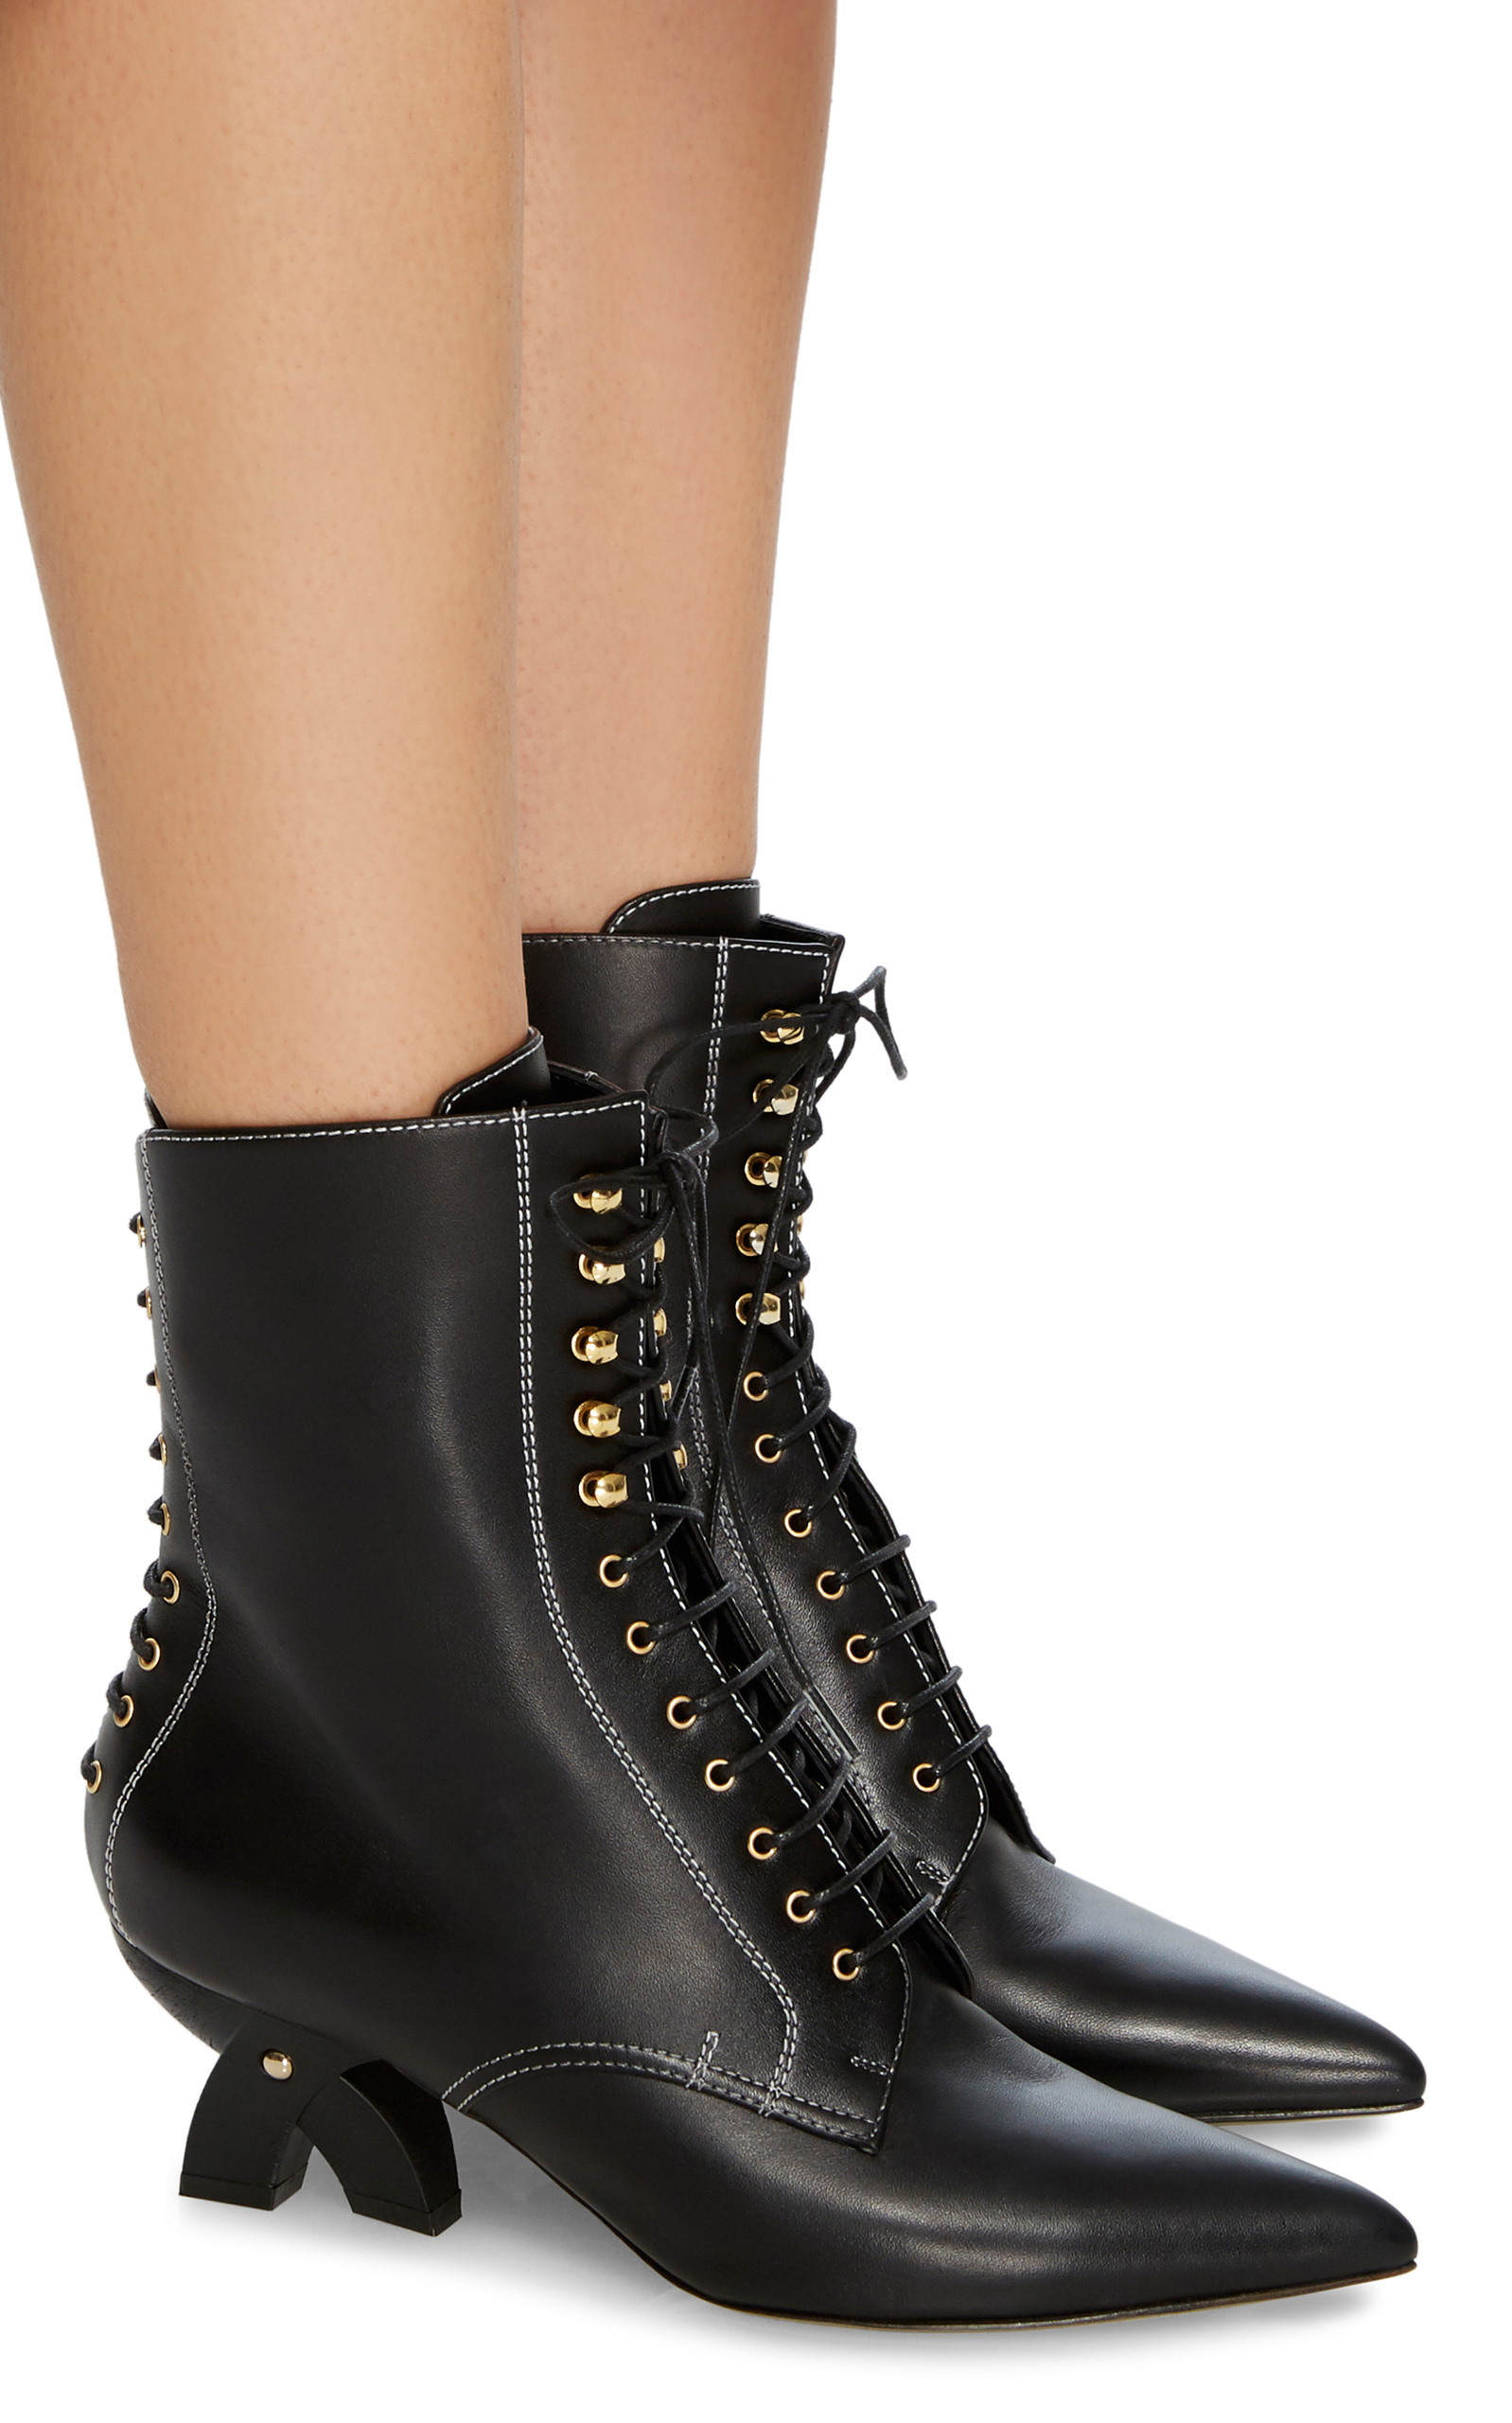 Loewe Ankle Boots Buy Cheap Best Store To Get rEYYvOn0L